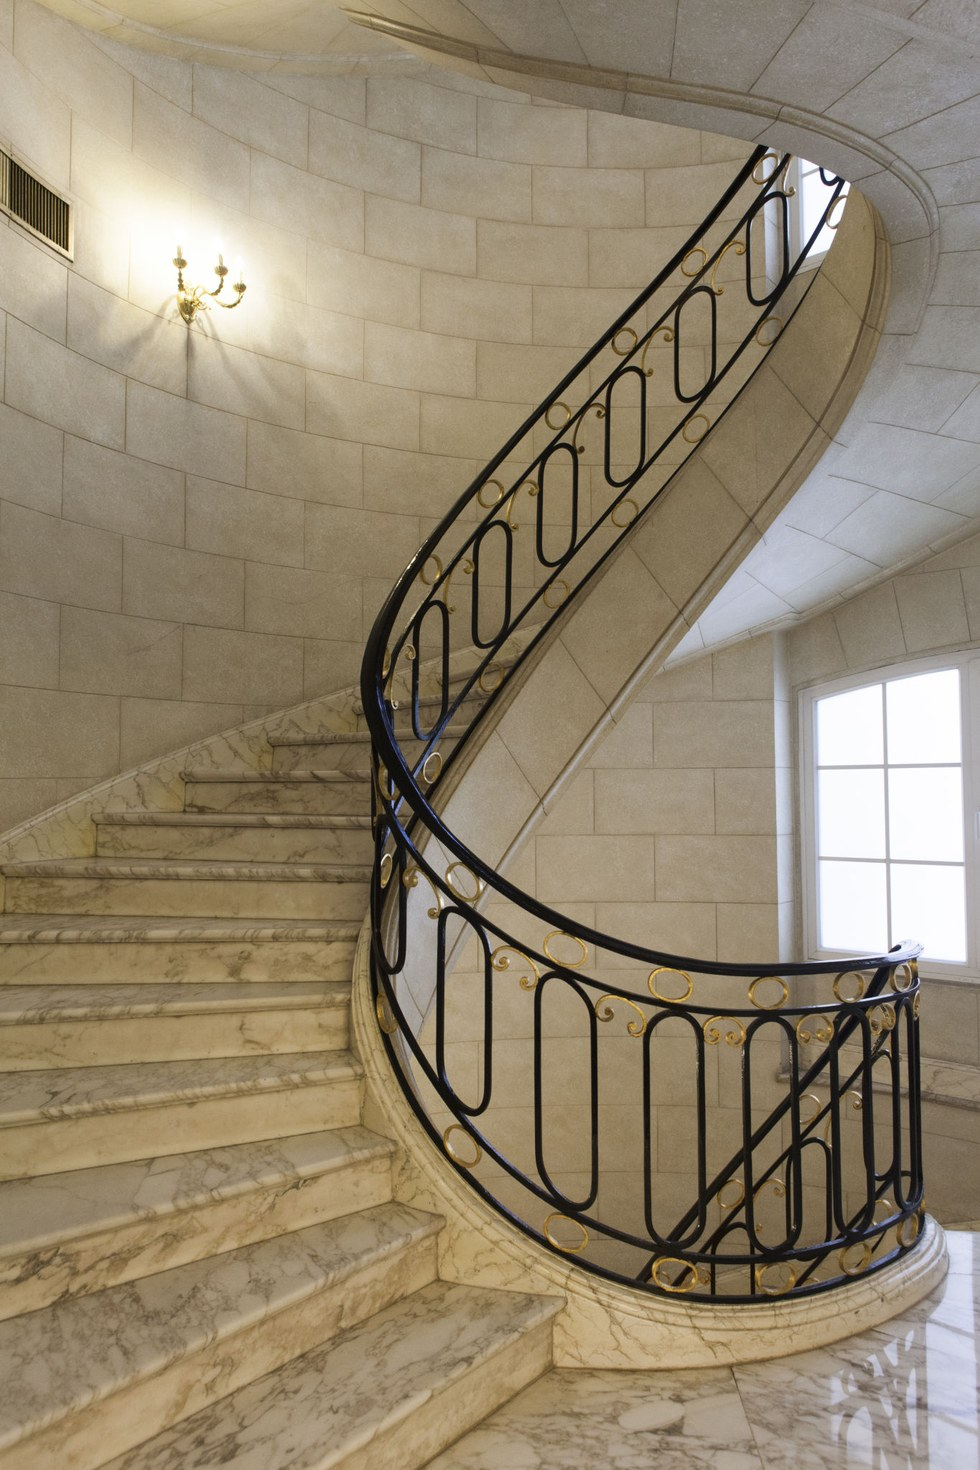 The winding marble staircase at the Alvear Palace Hotel